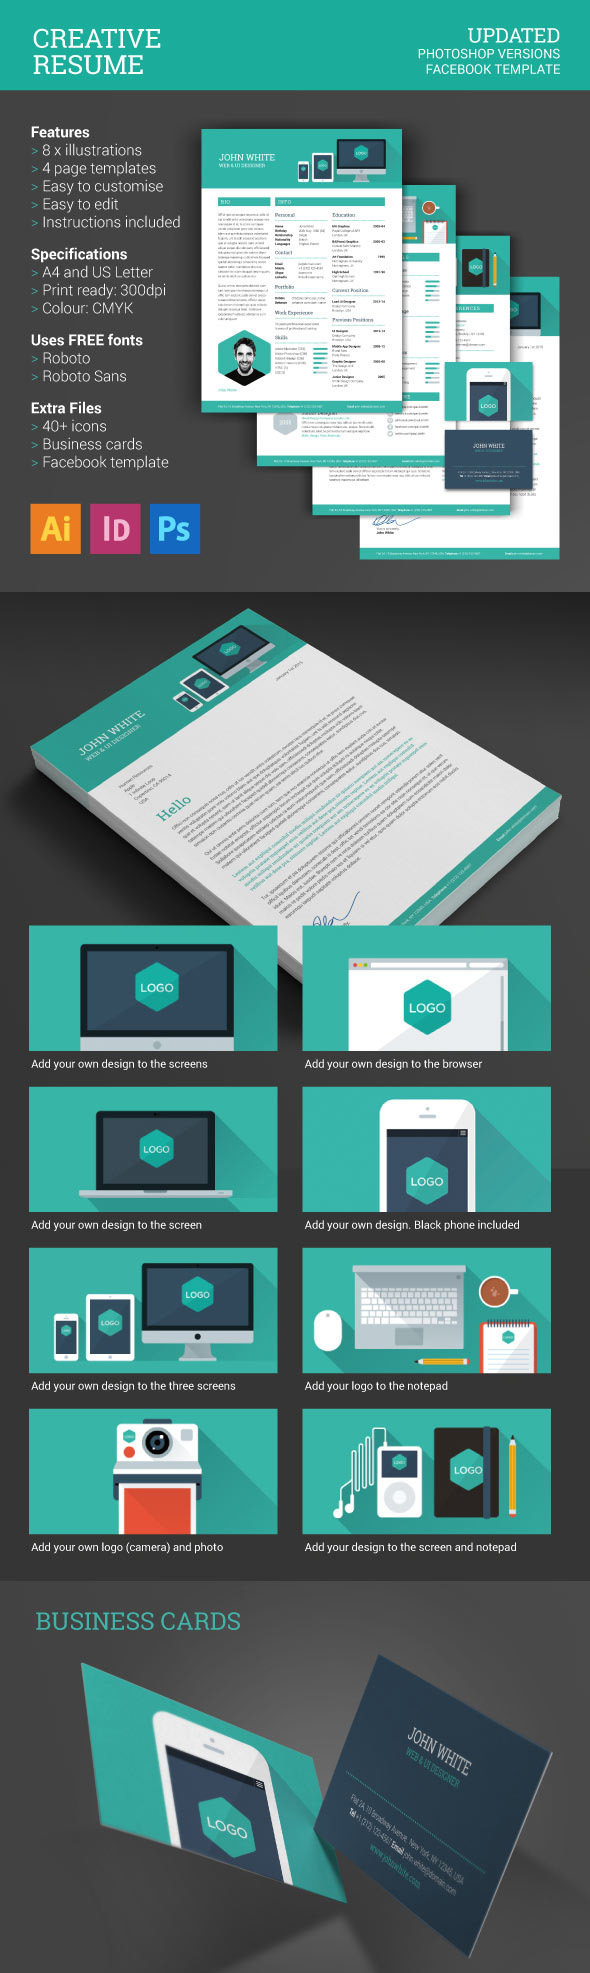 best resume templates design graphic design junction flat minimal style creative resume design